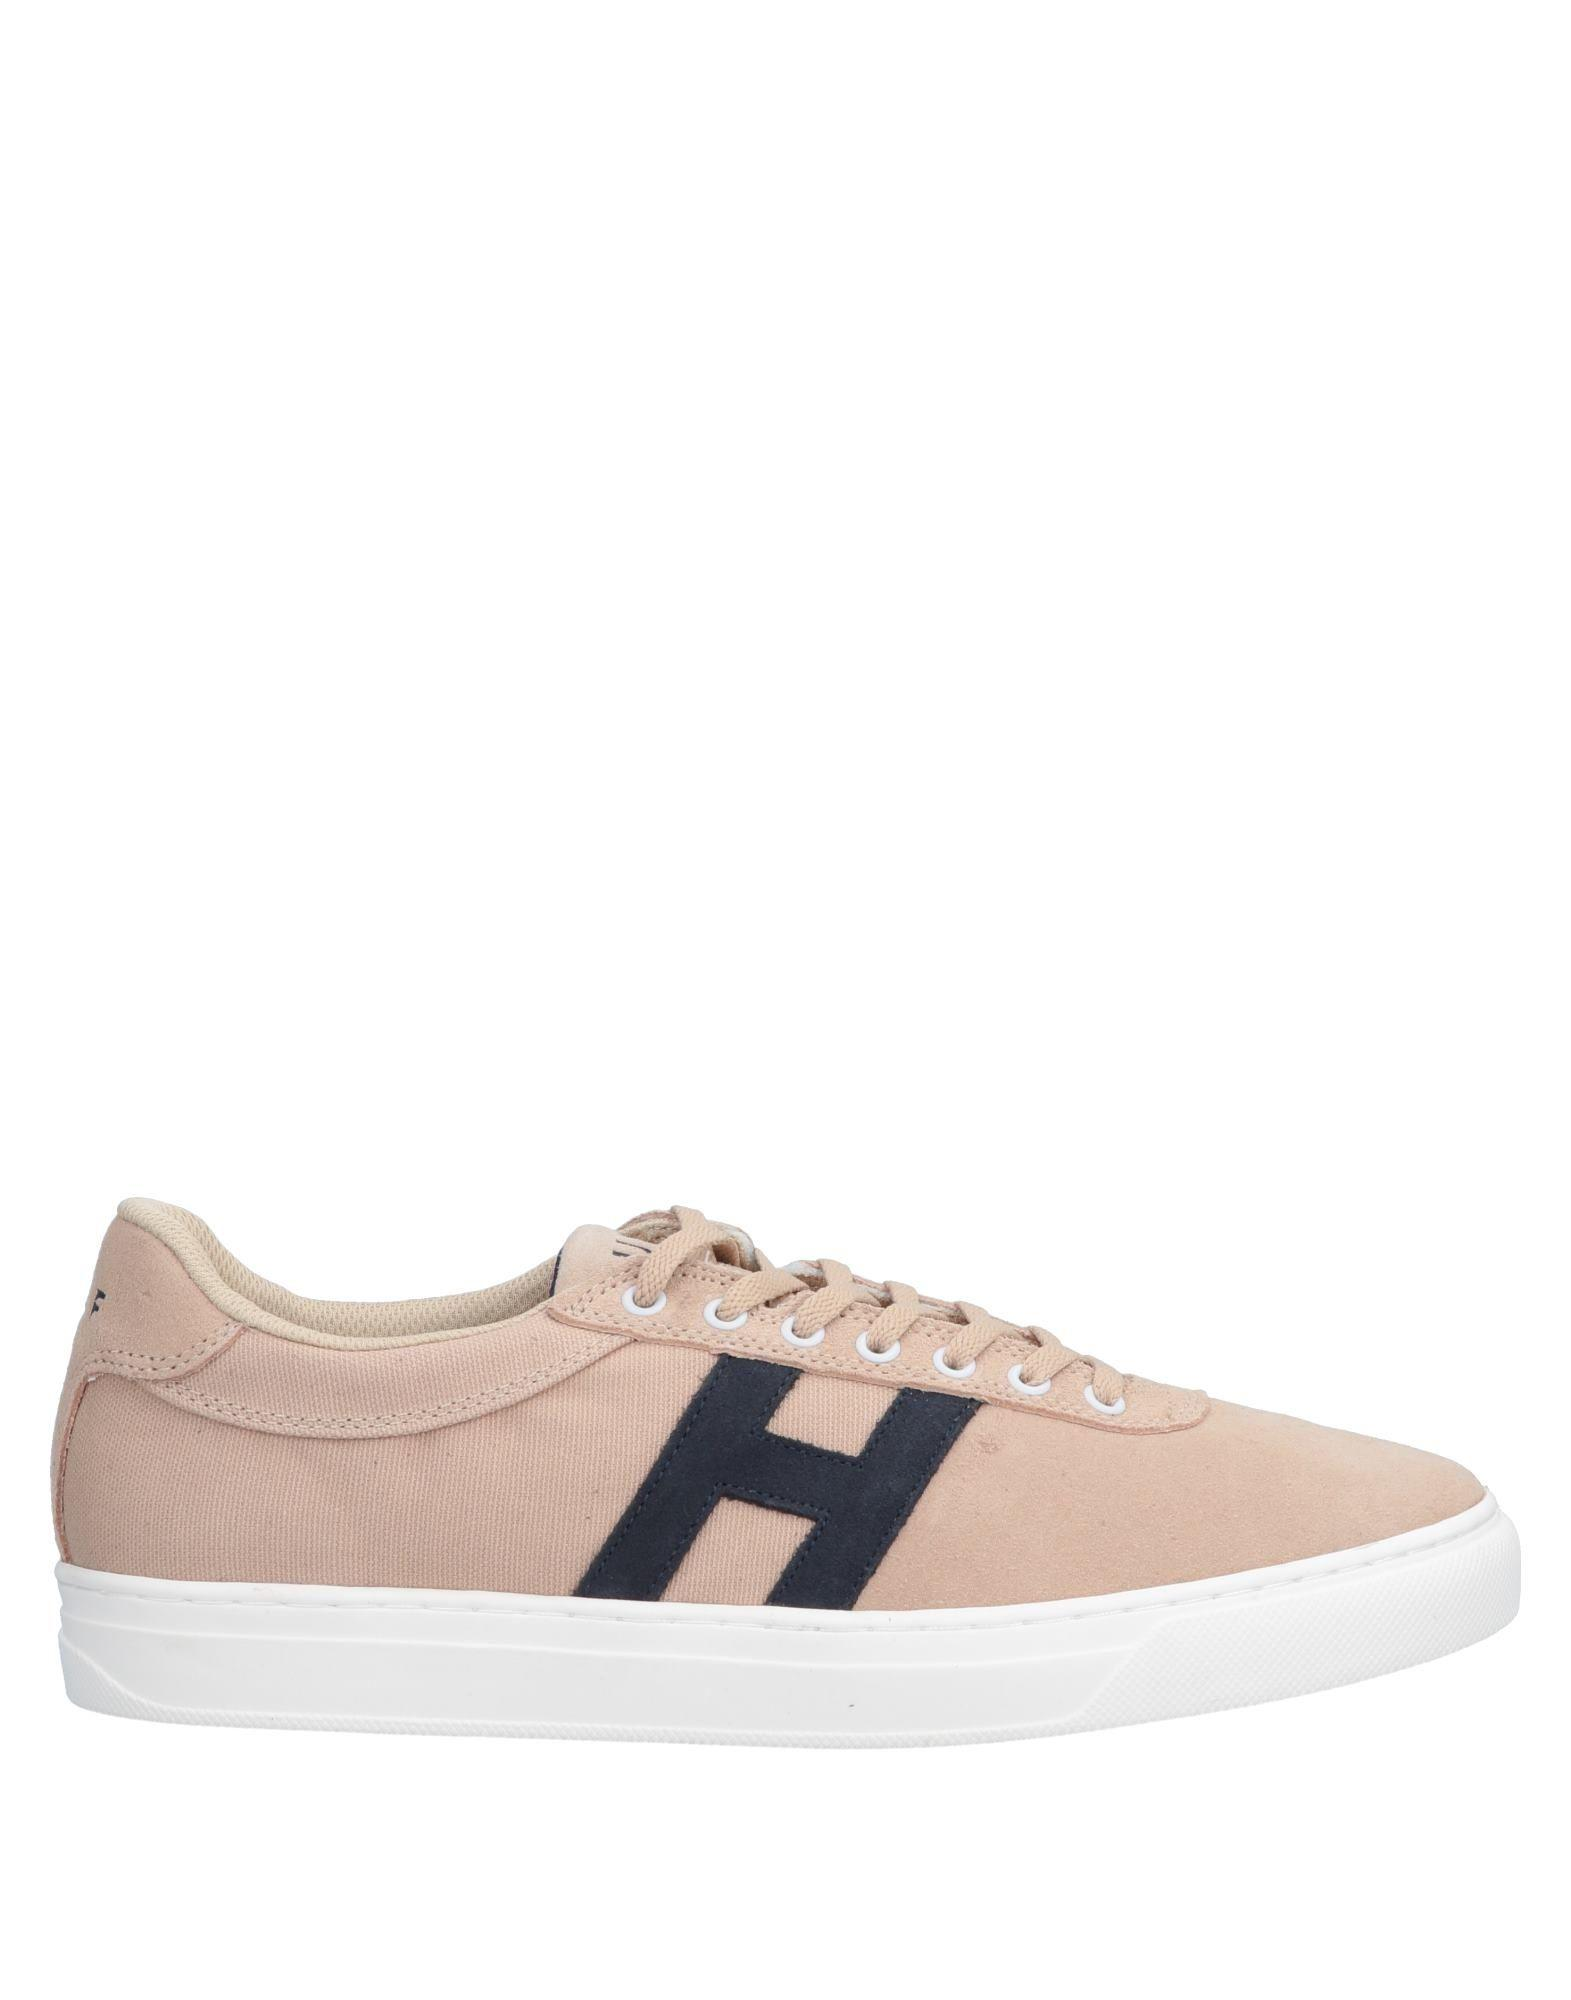 9e803142a680d Lyst - Huf Low-tops & Sneakers in Gray for Men